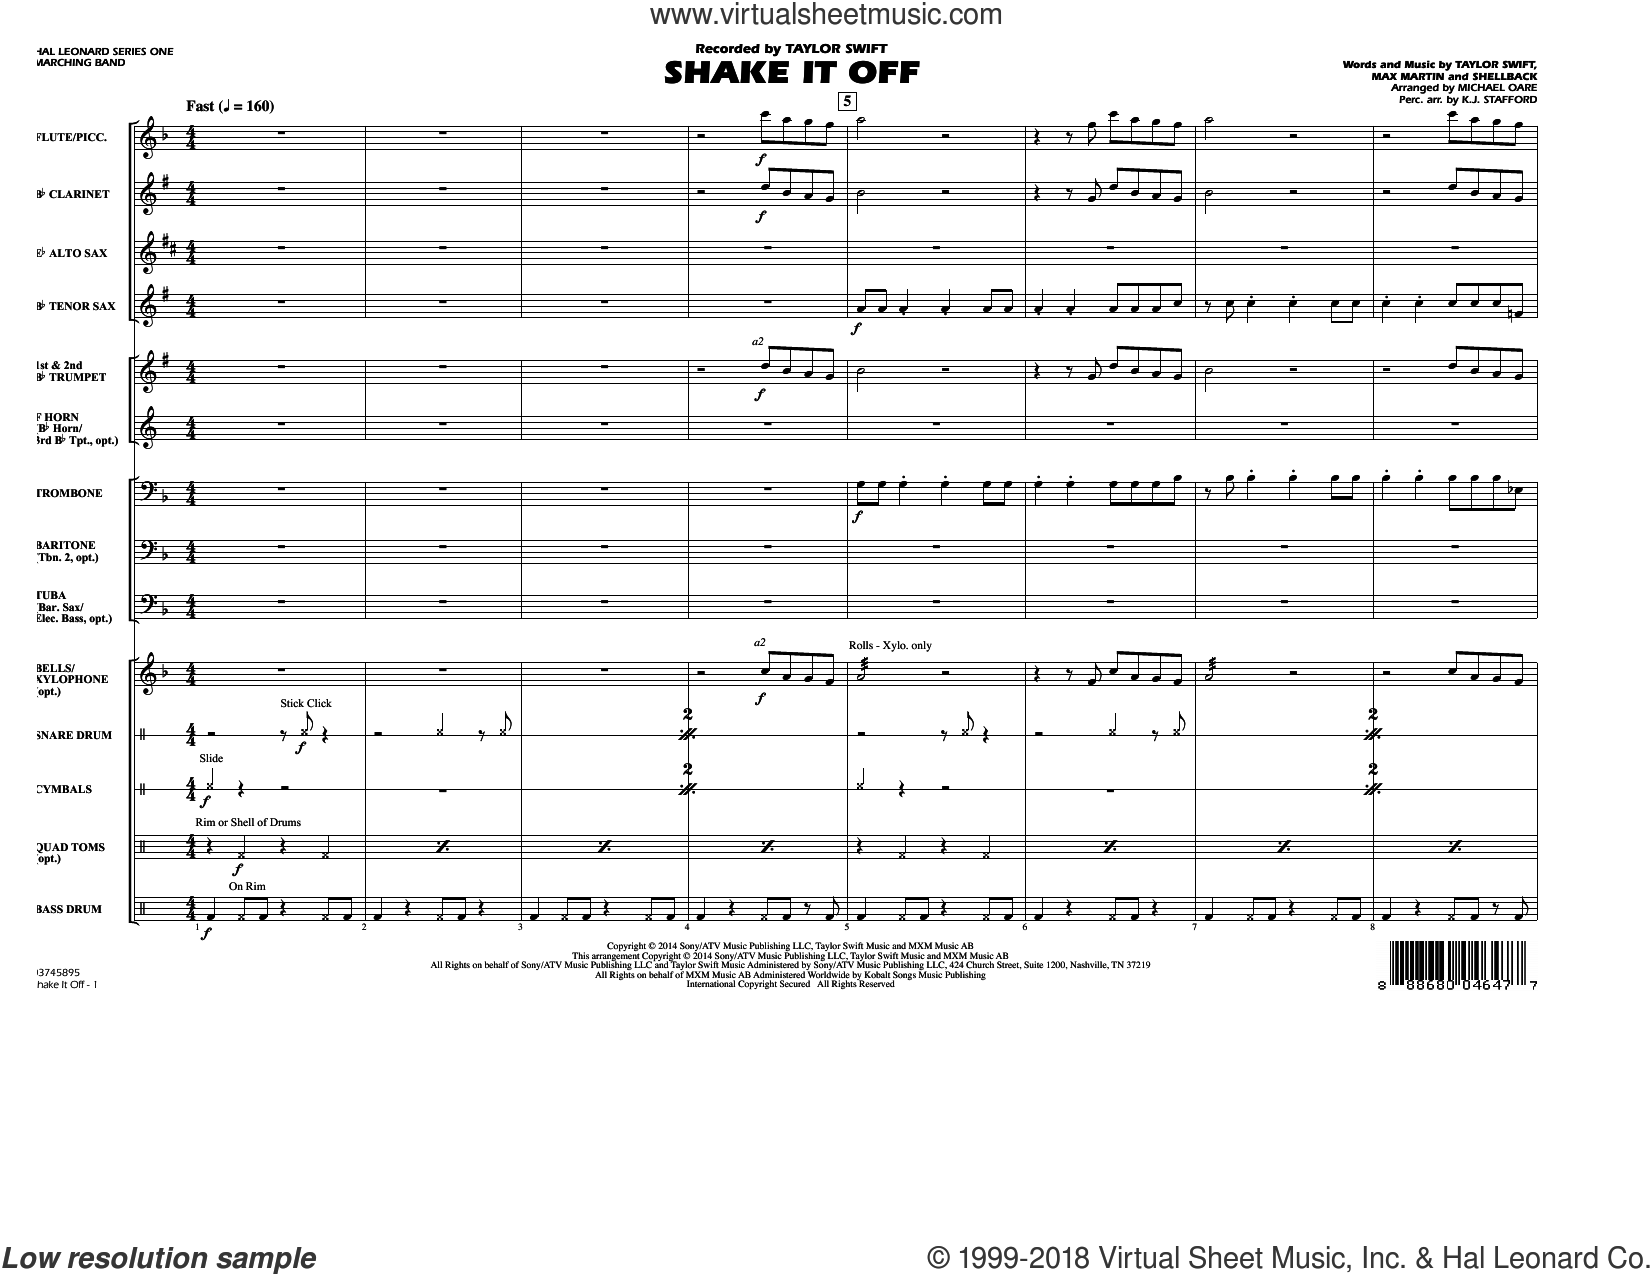 Shake It Off (COMPLETE) sheet music for marching band by Taylor Swift, Johan Schuster, Max Martin, Michael Oare and Shellback, intermediate skill level